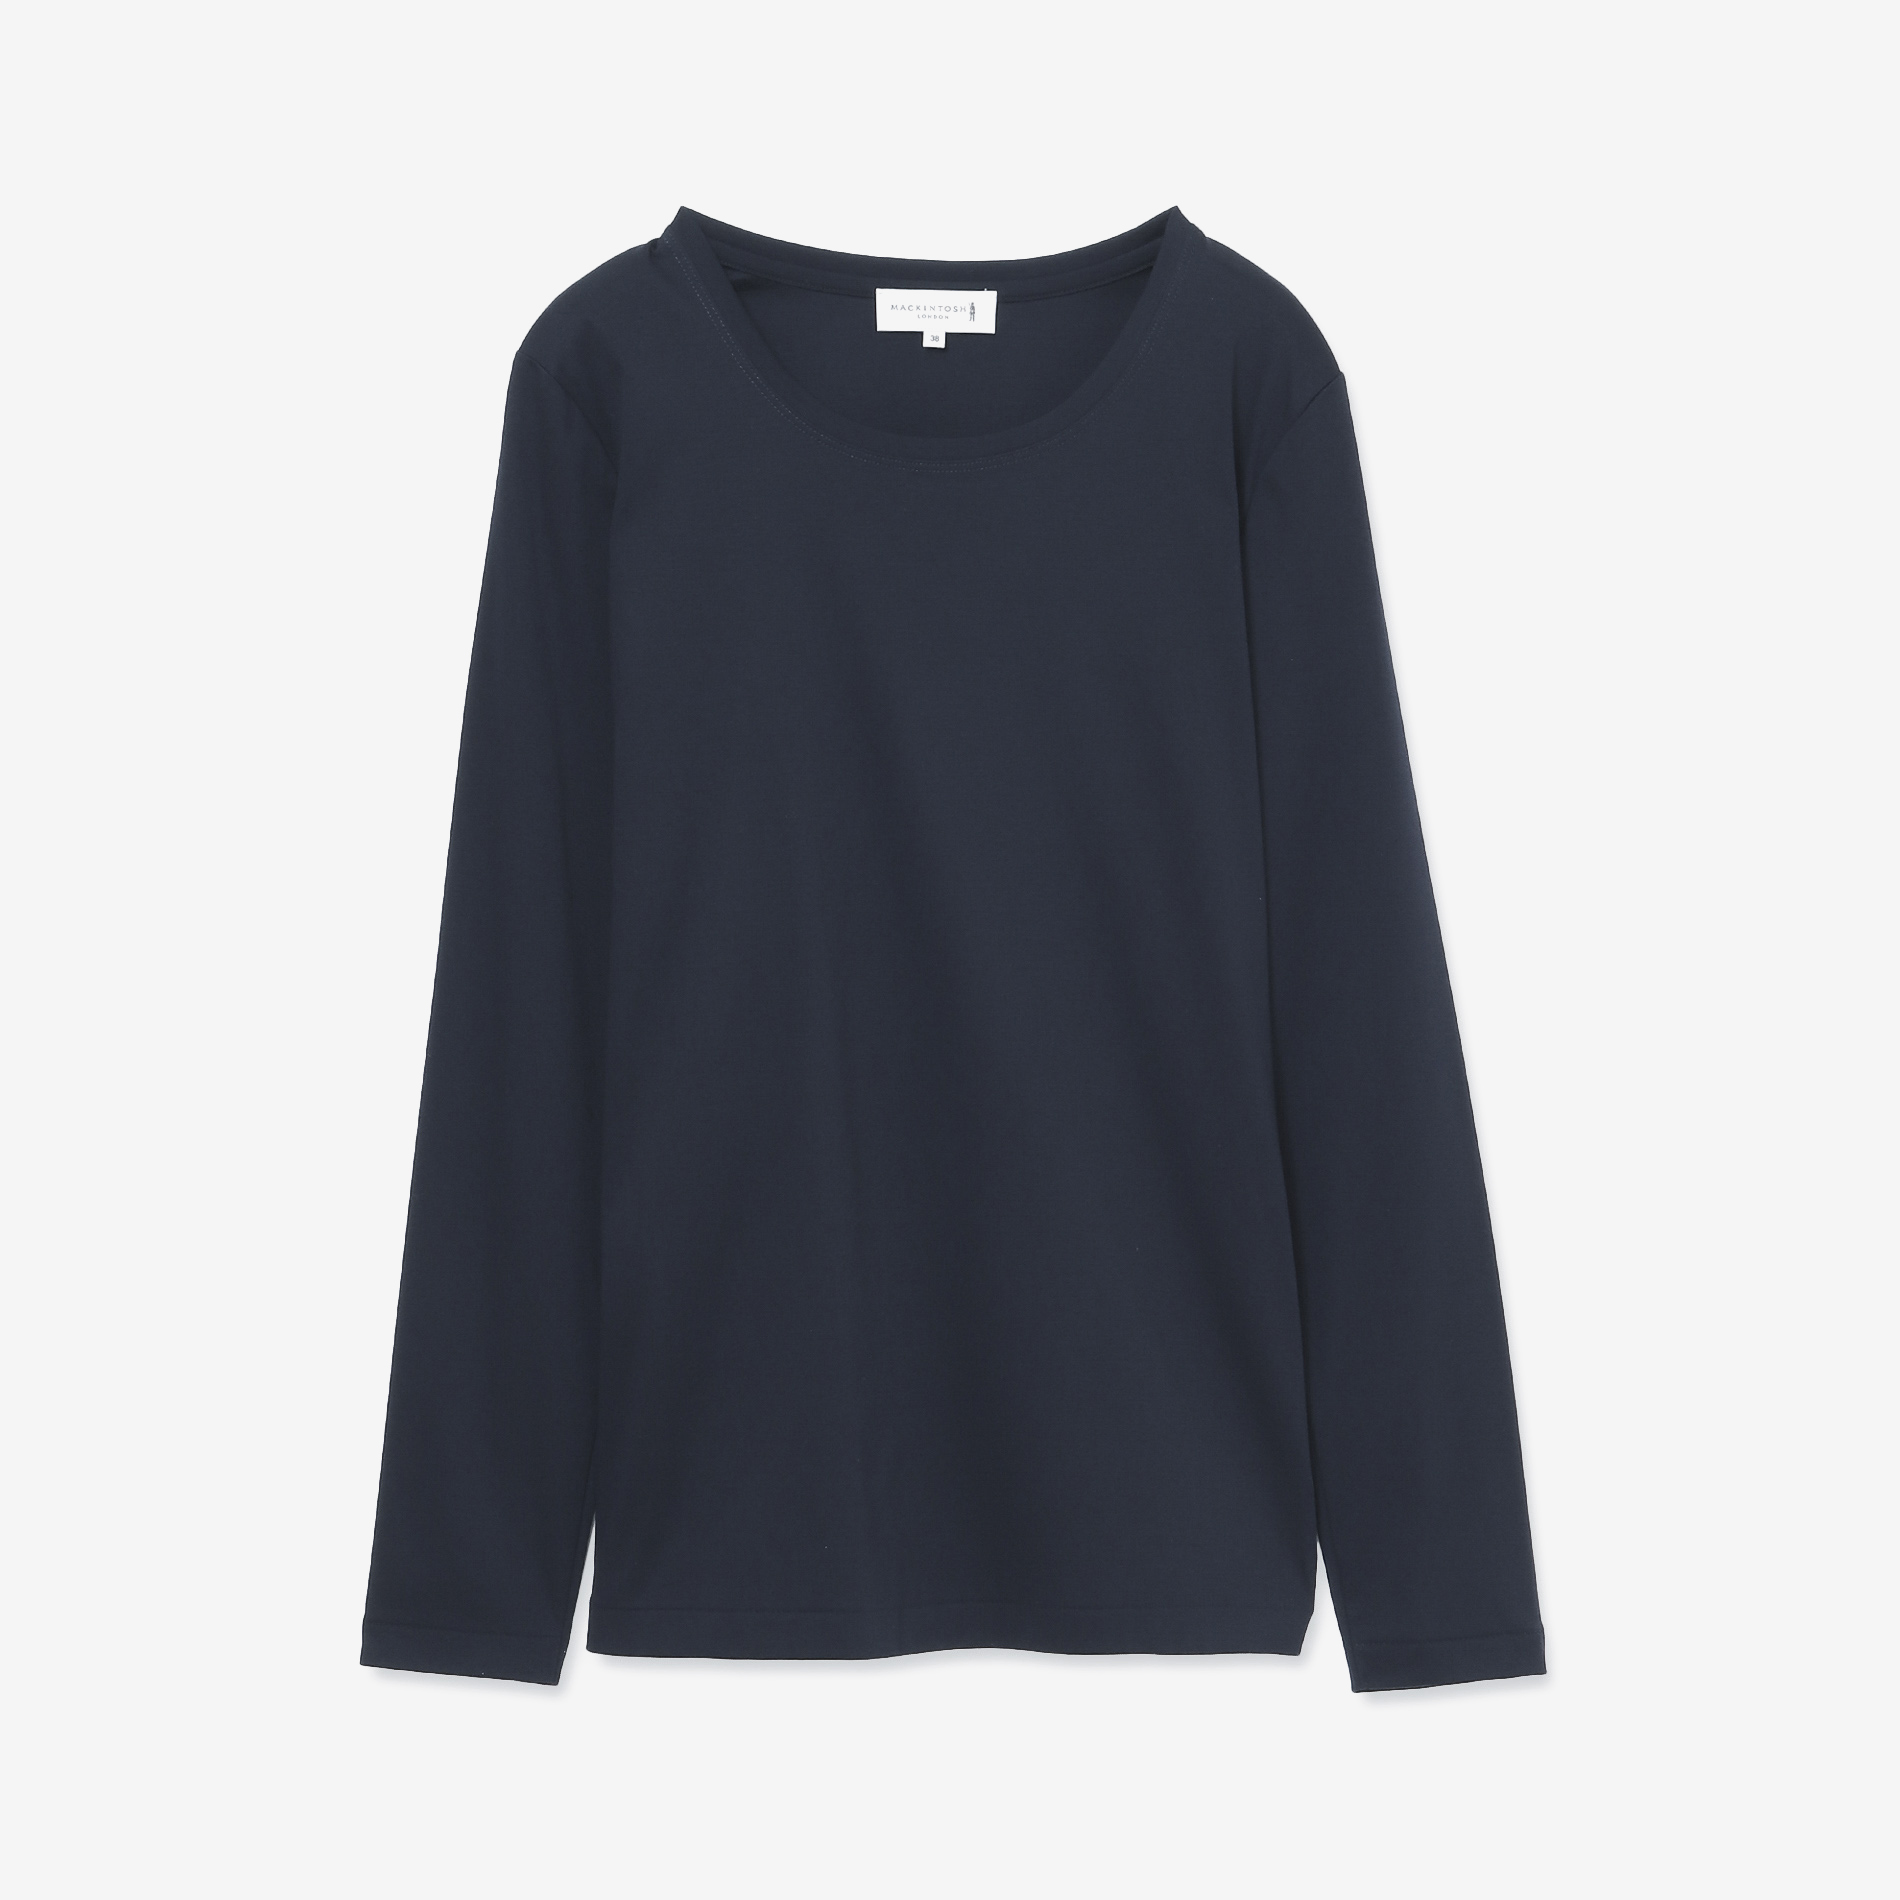 【The Essential Collection】スーピマコットンスムースロングTシャツ